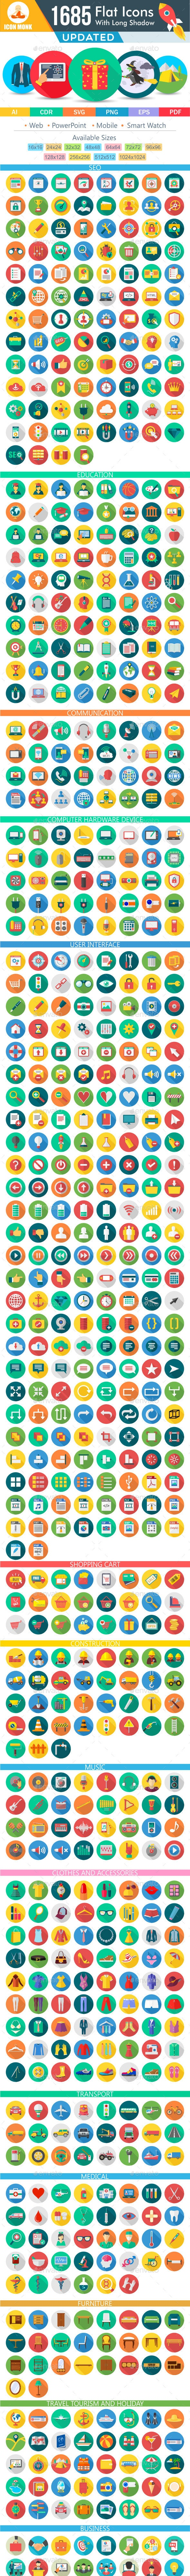 1370 New Flat Icons - Icons